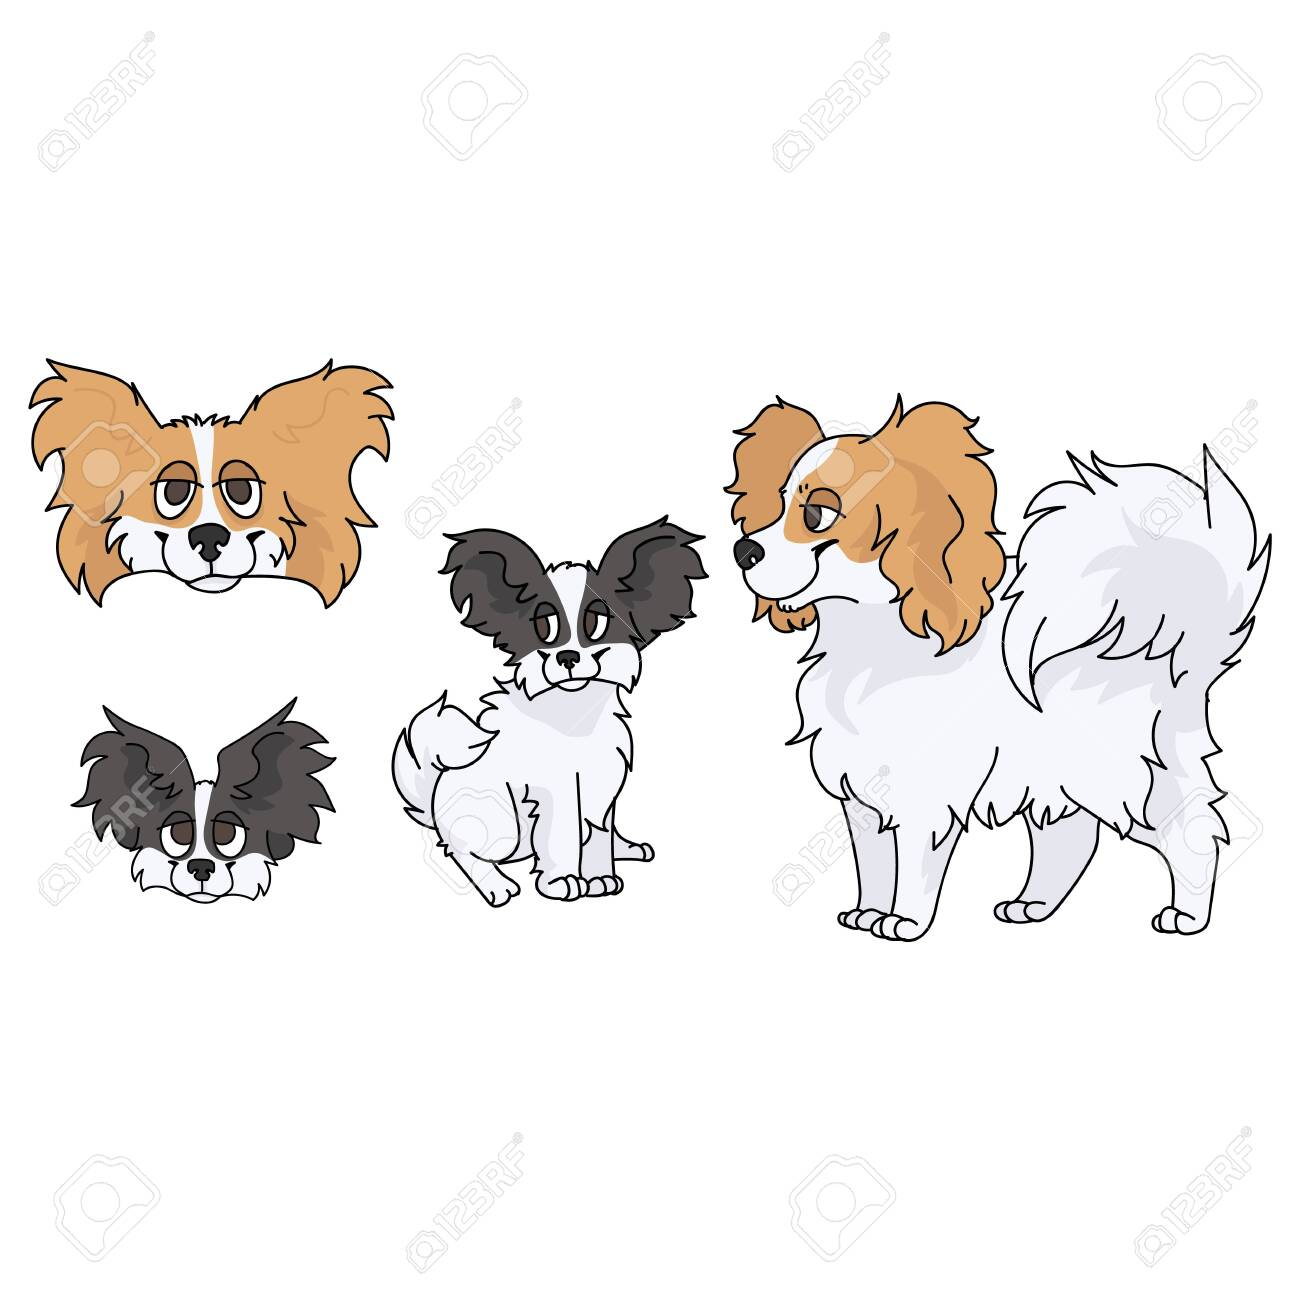 Cute Cartoon Papillon Dog And Puppy Set Breed Vector Clipart Royalty Free Cliparts Vectors And Stock Illustration Image 141977235